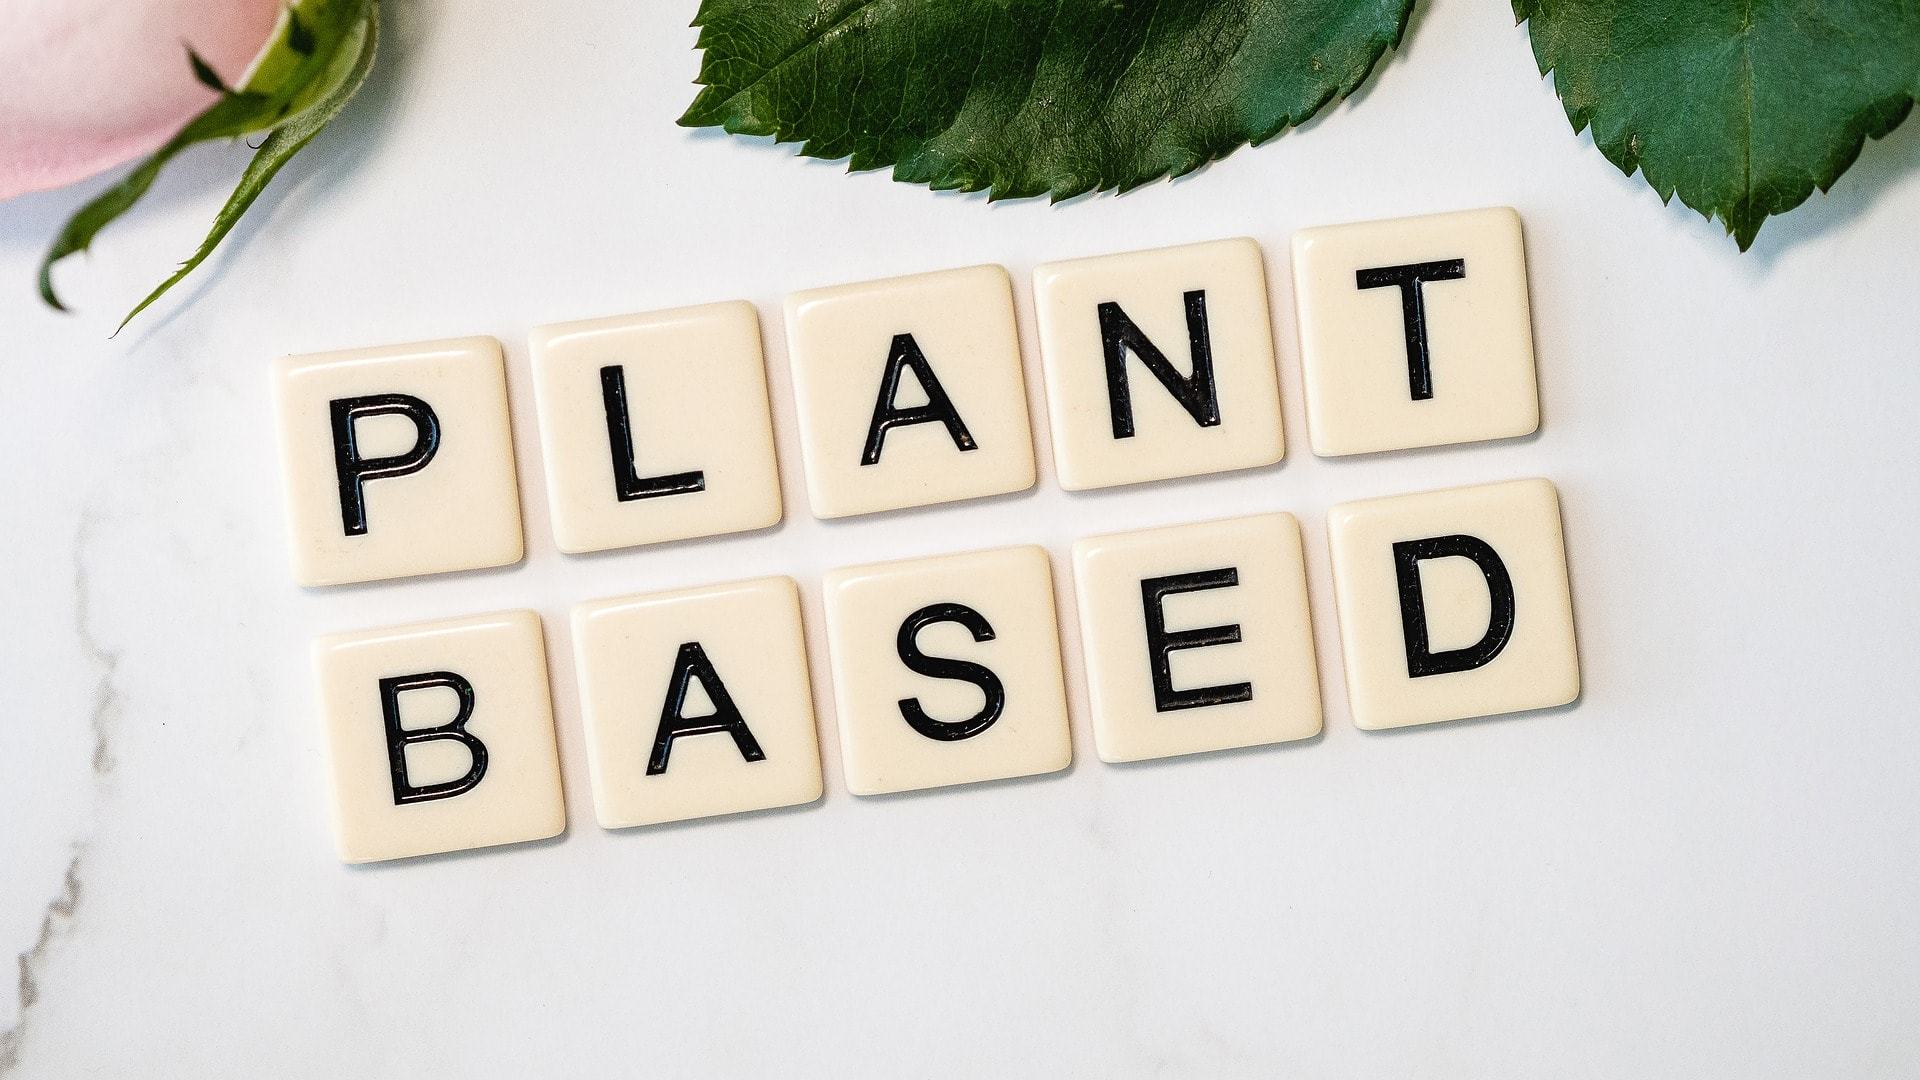 About Plant-based Diet